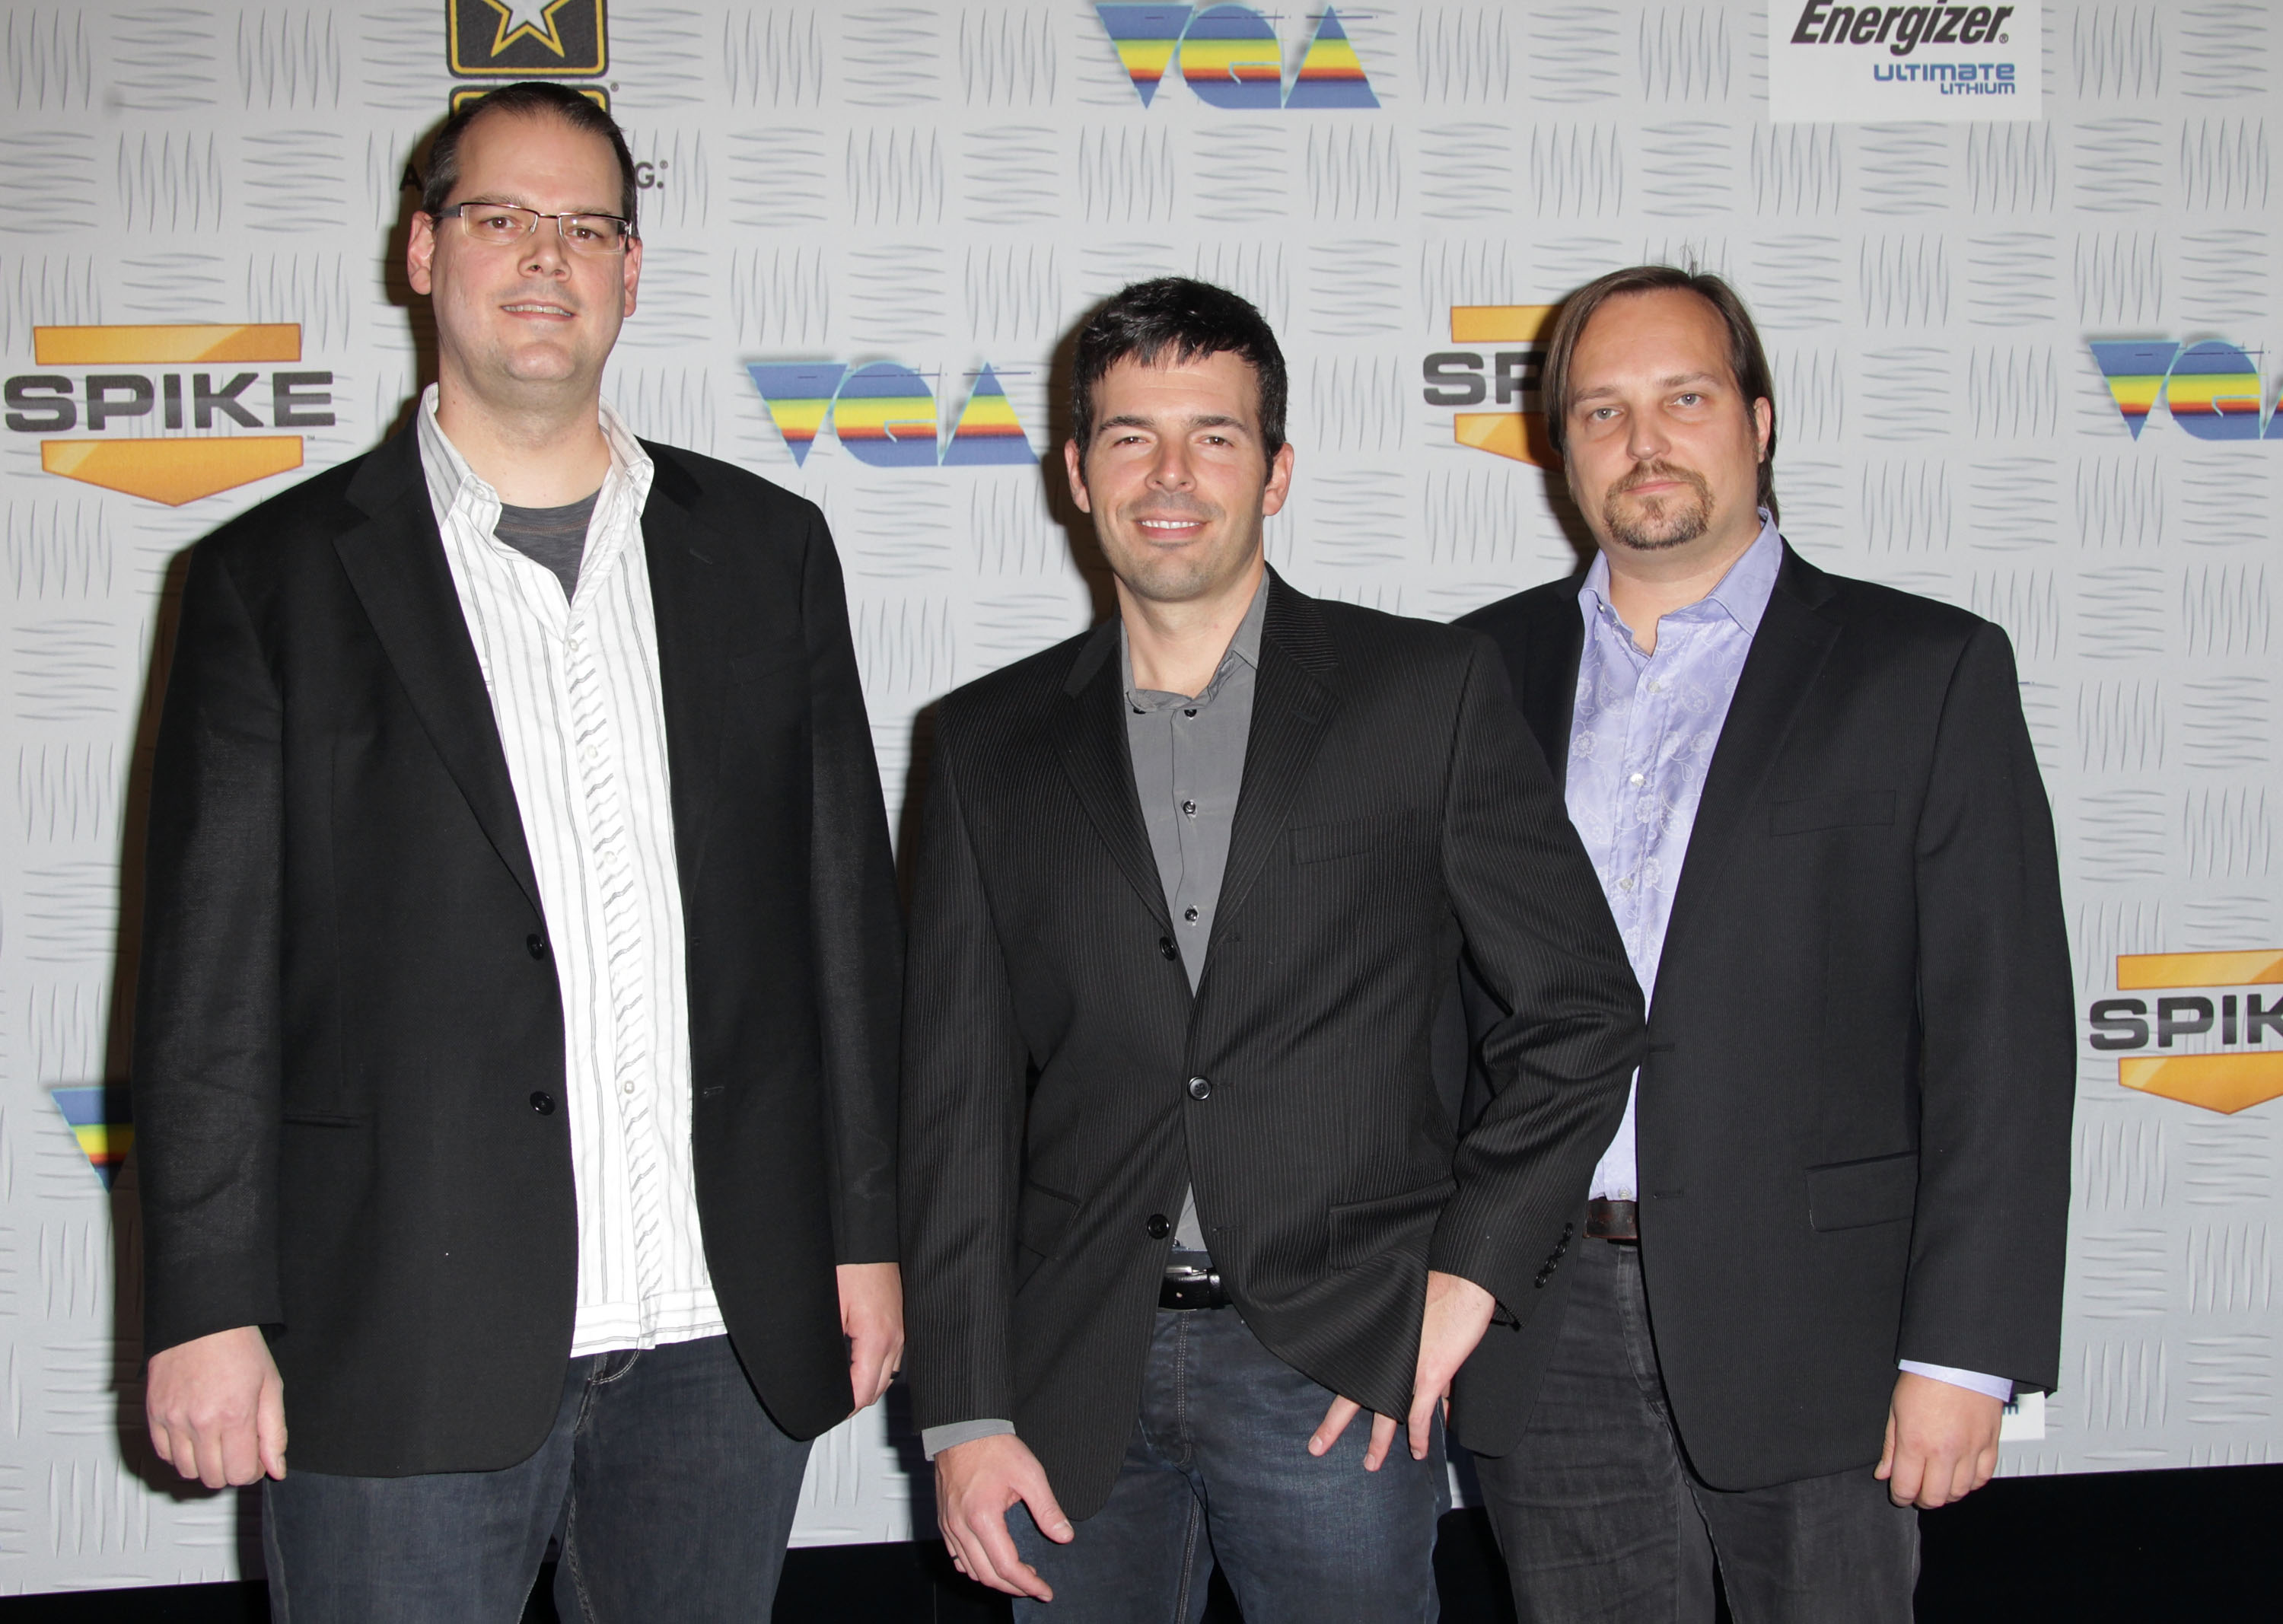 BioWare co-founder Ray Muzyka, Mass Effect 2 executive producer Casey Hudson, and  BioWare co-founder Greg Zeschuk at Spike TV's  2010 Video Game Awards  held at the LA Convention Center on December 11, 2010 in Los Angeles, California.